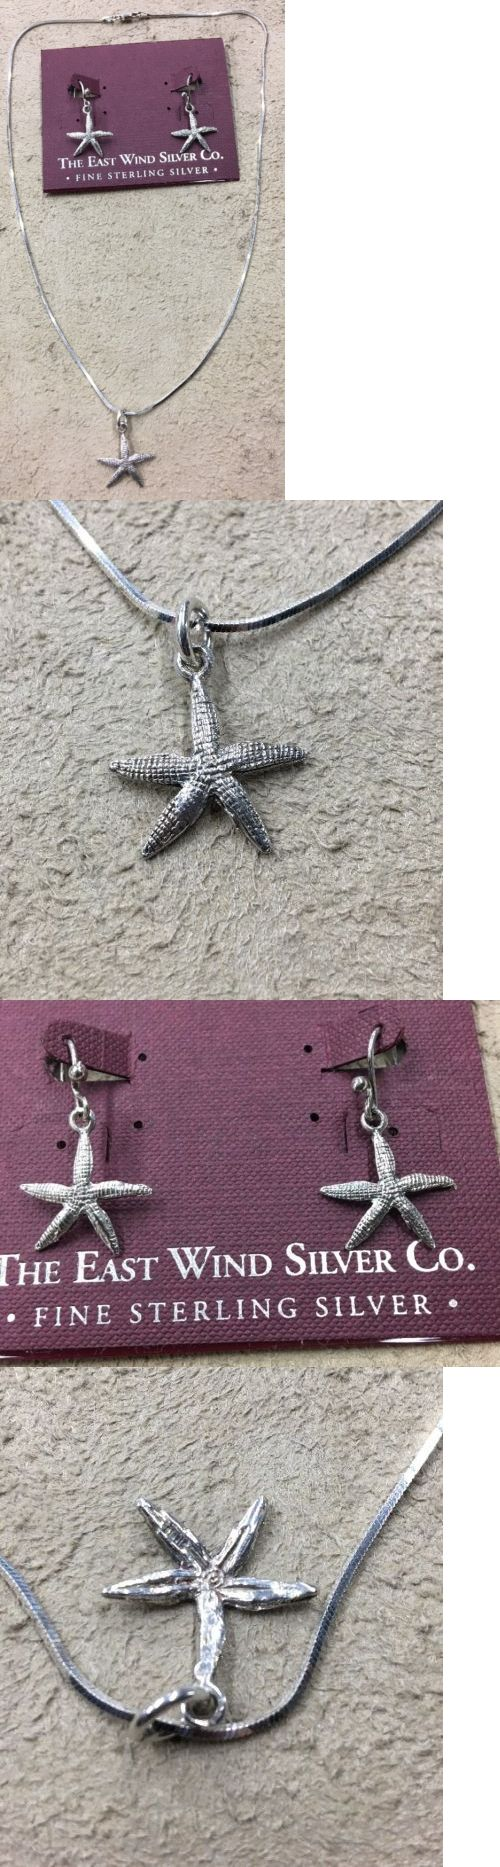 Precious Metal without Stones 164325: East Wind Sterling Co. Silver (925) Starfish Matching Necklace And Earrings -> BUY IT NOW ONLY: $50.0 on eBay!